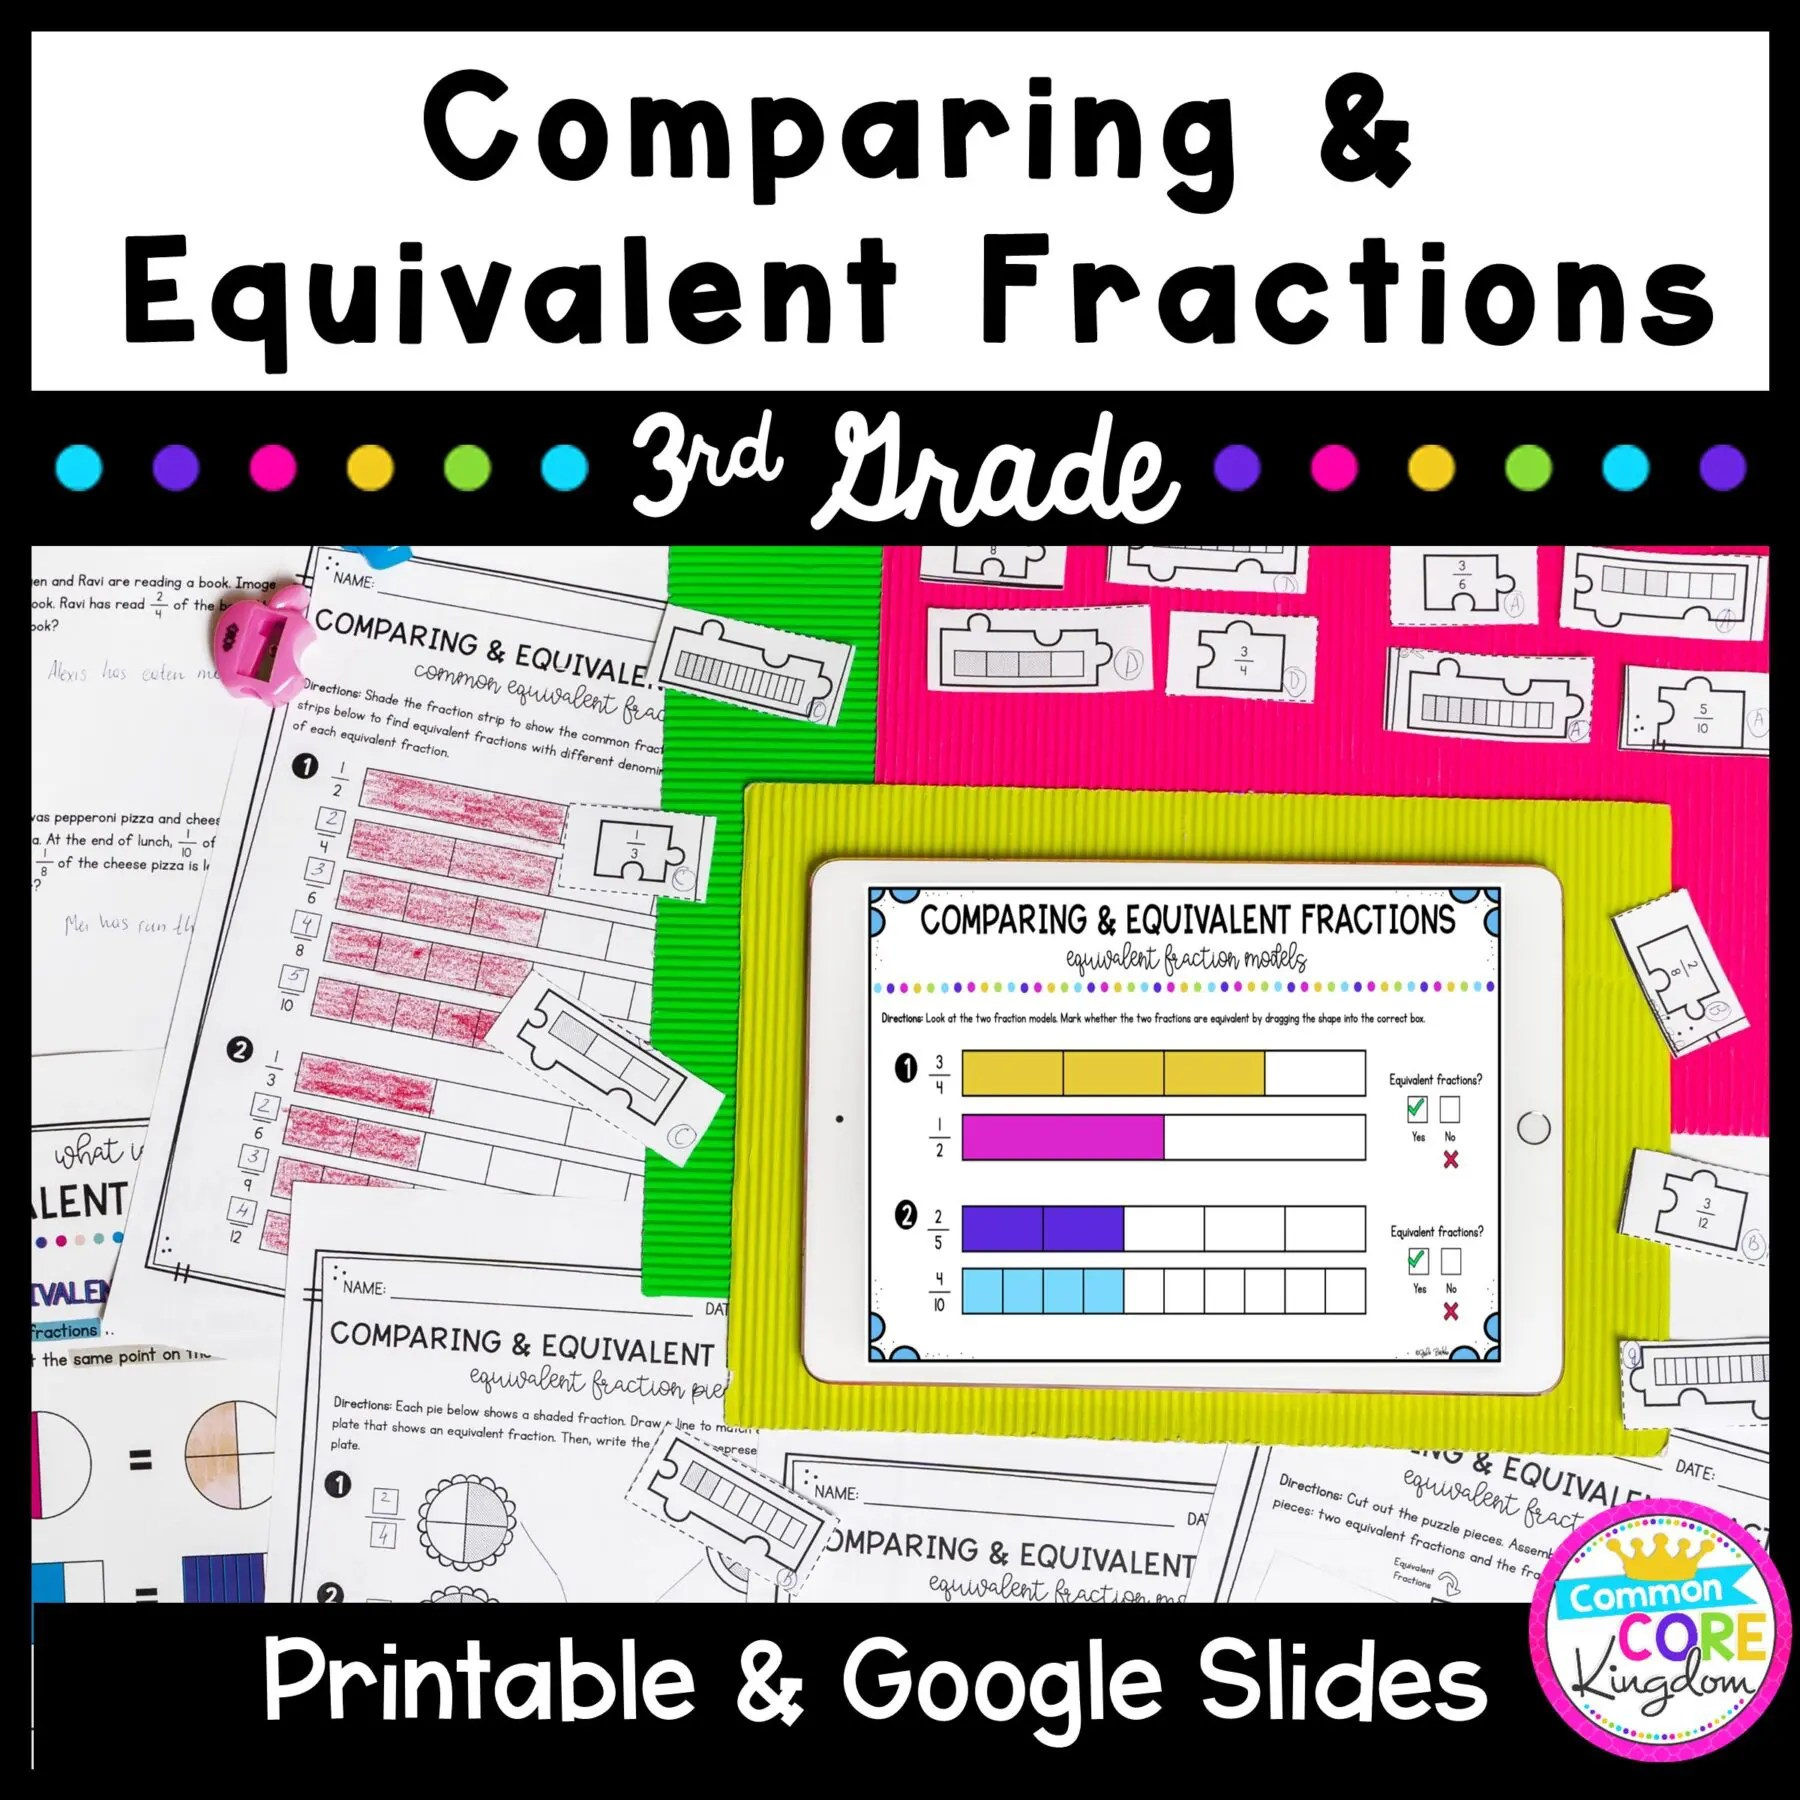 small resolution of Comparing Equivalent Fractions 3rd Grade Math   Common Core Kingdom